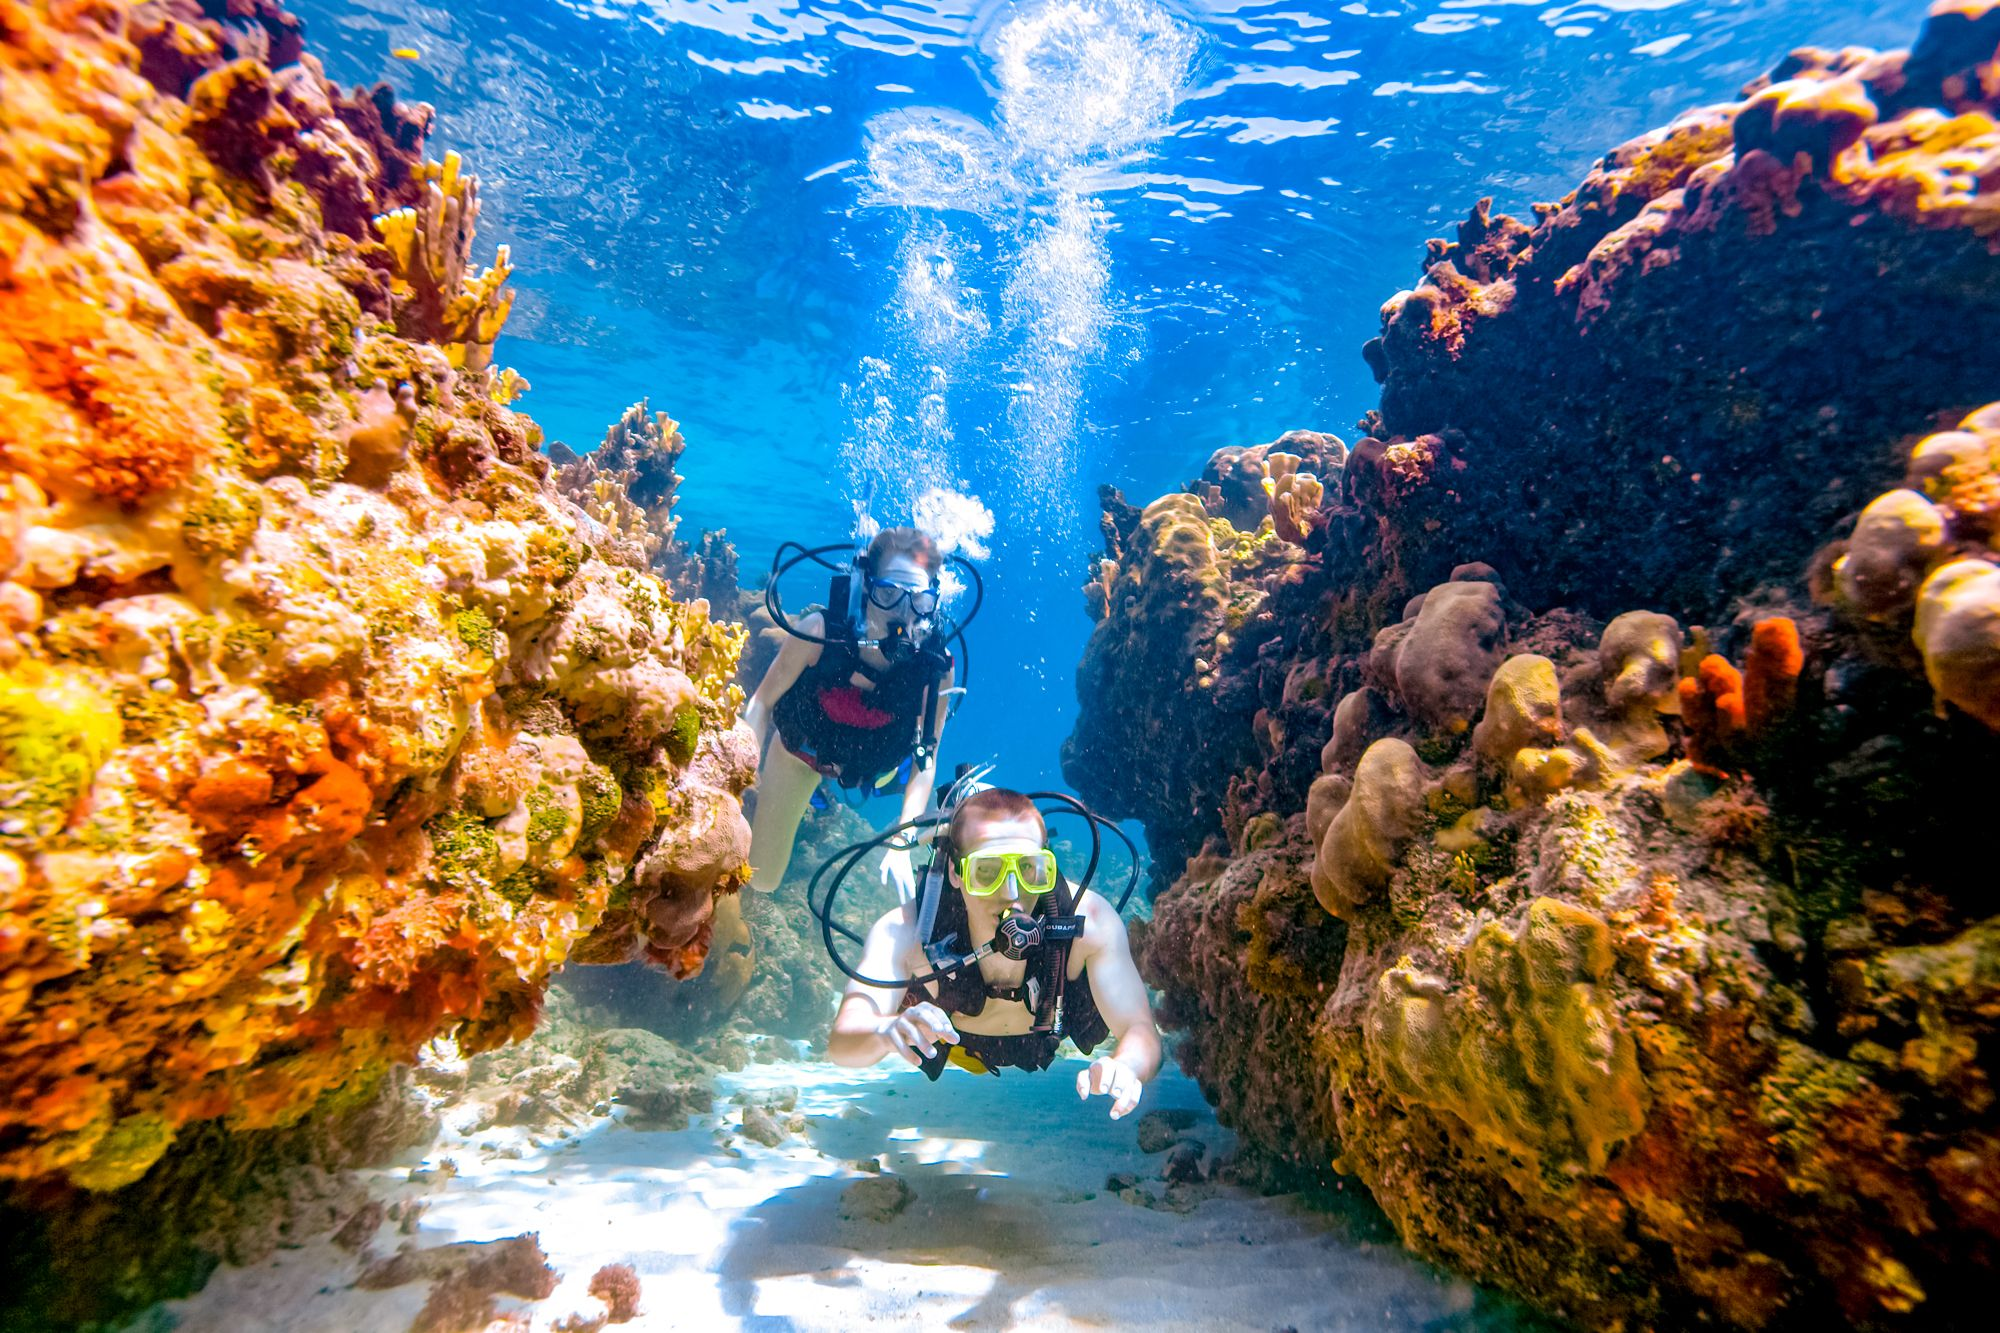 Sandals Montego Bay Scuba Diving Coral Couple